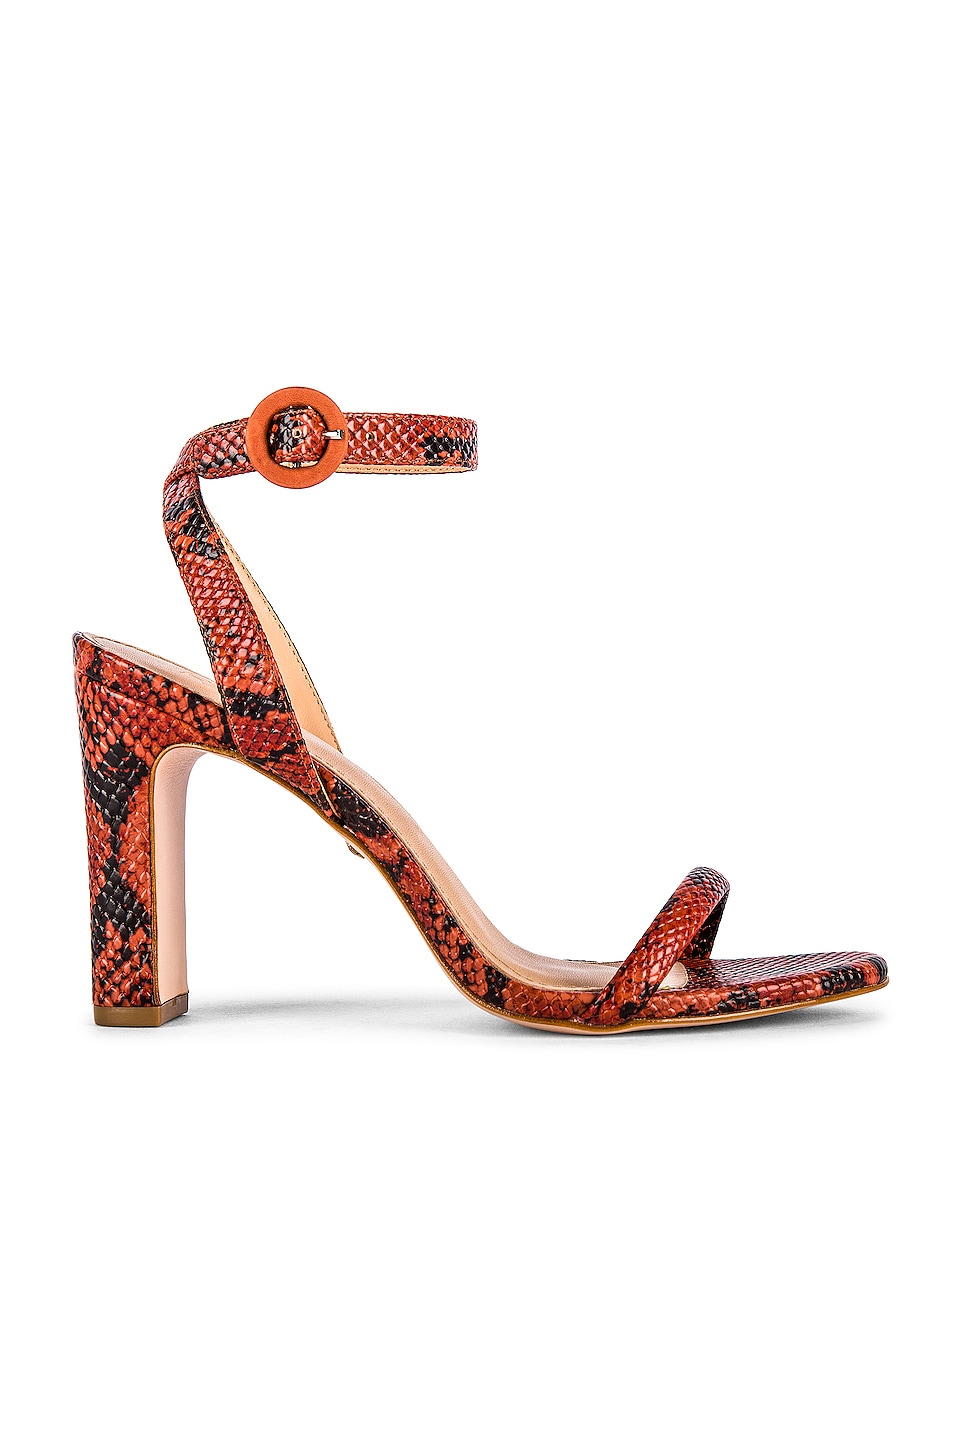 RAYE Glendora Heel in Red Snake